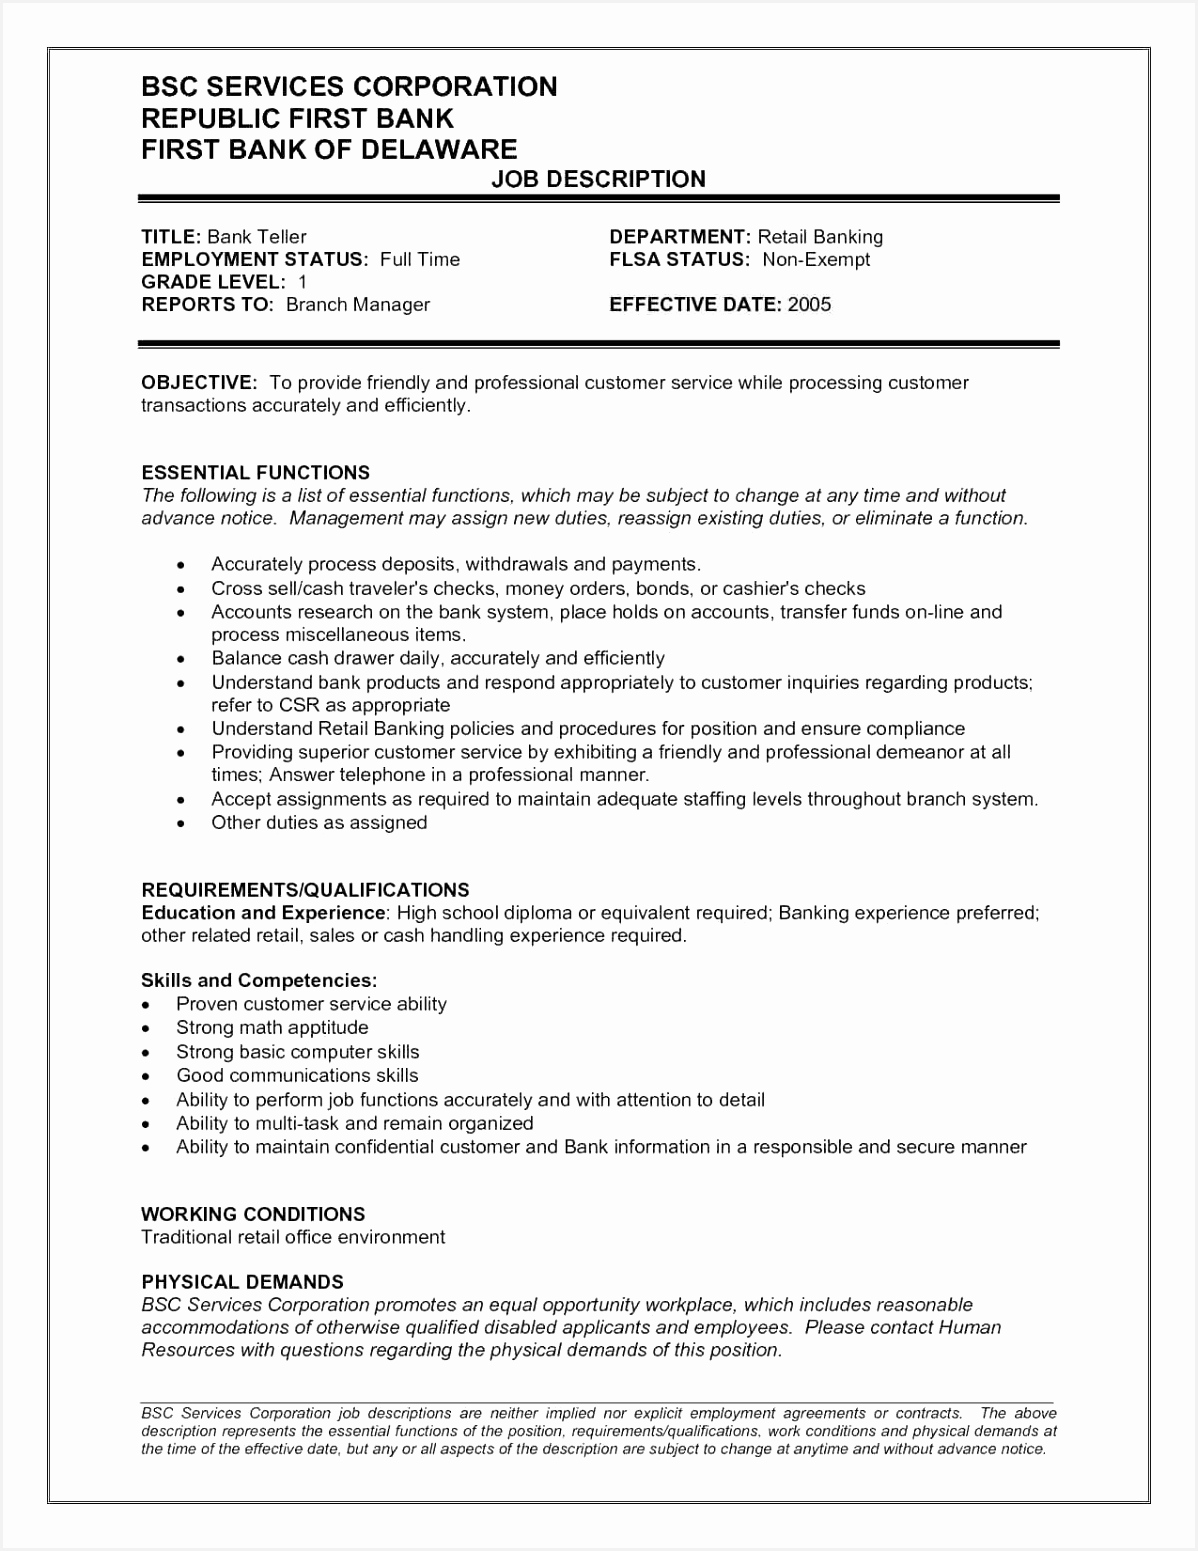 Sample Bank Management Resume Rkbpg Lovely 19 Expensive Management Resume Examples Sierra Of Sample Bank Management Resume Waafg Fresh Banking Skills for Resume Beautiful 25 New Property Manager Resume